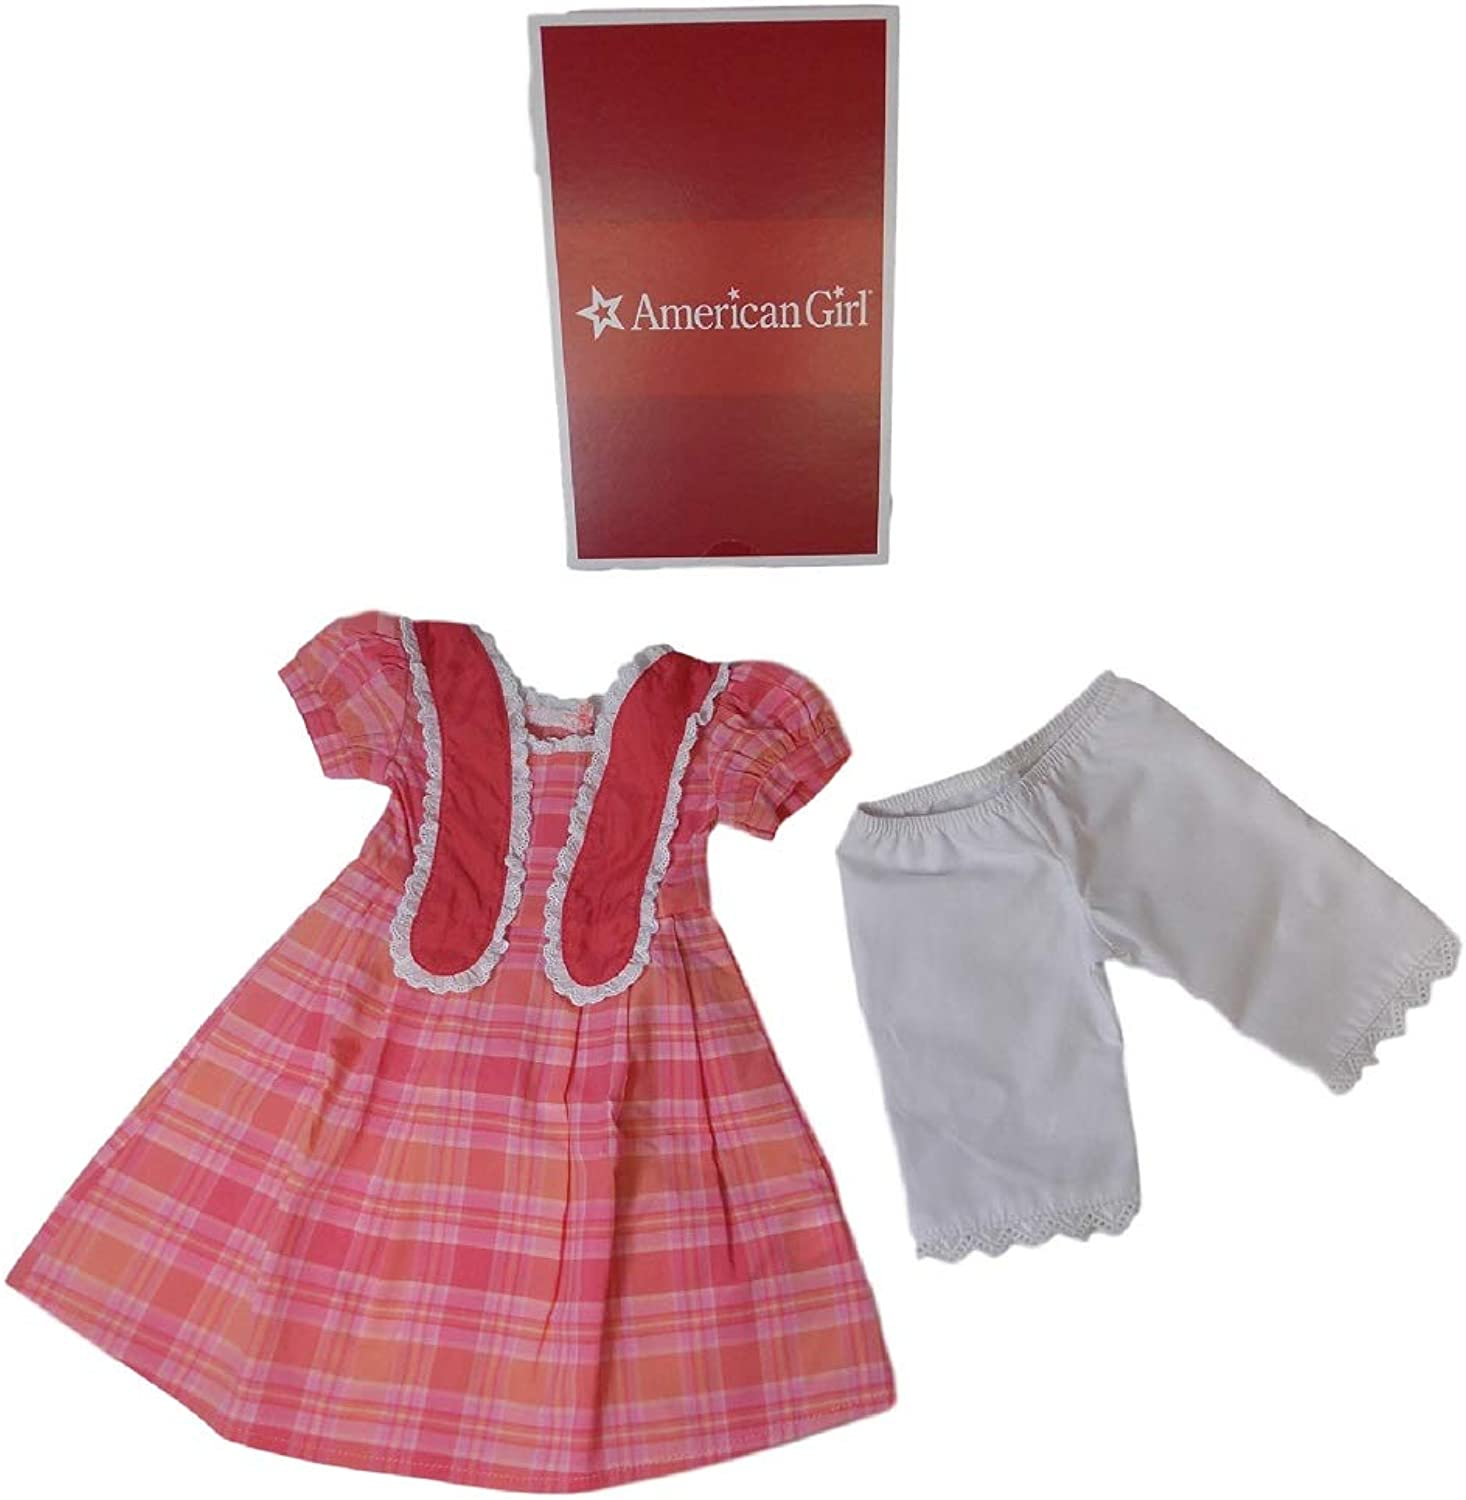 American Girl MarieGrace's Meet Outfit (Doll Not Included)